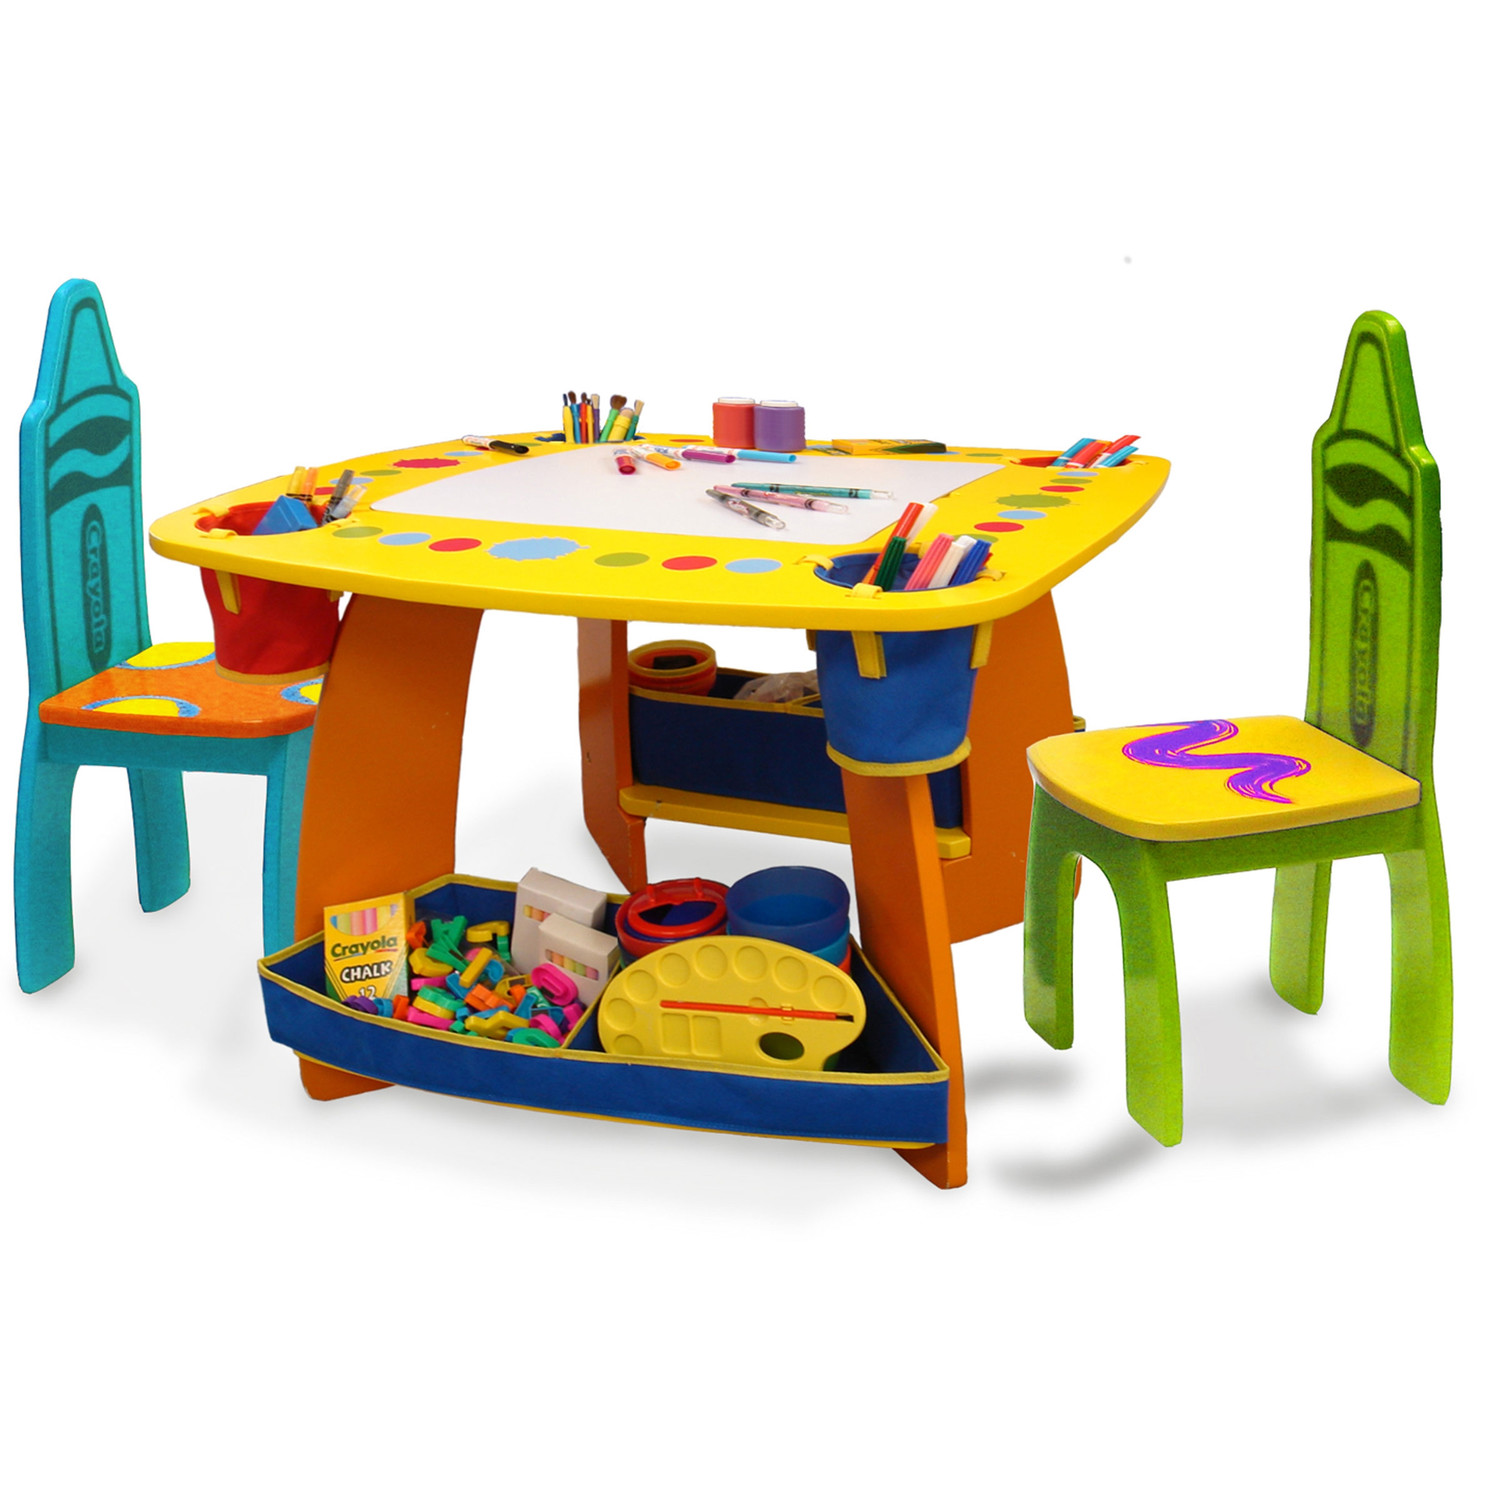 Simple and Minimalist Table and Chair for Toddlers